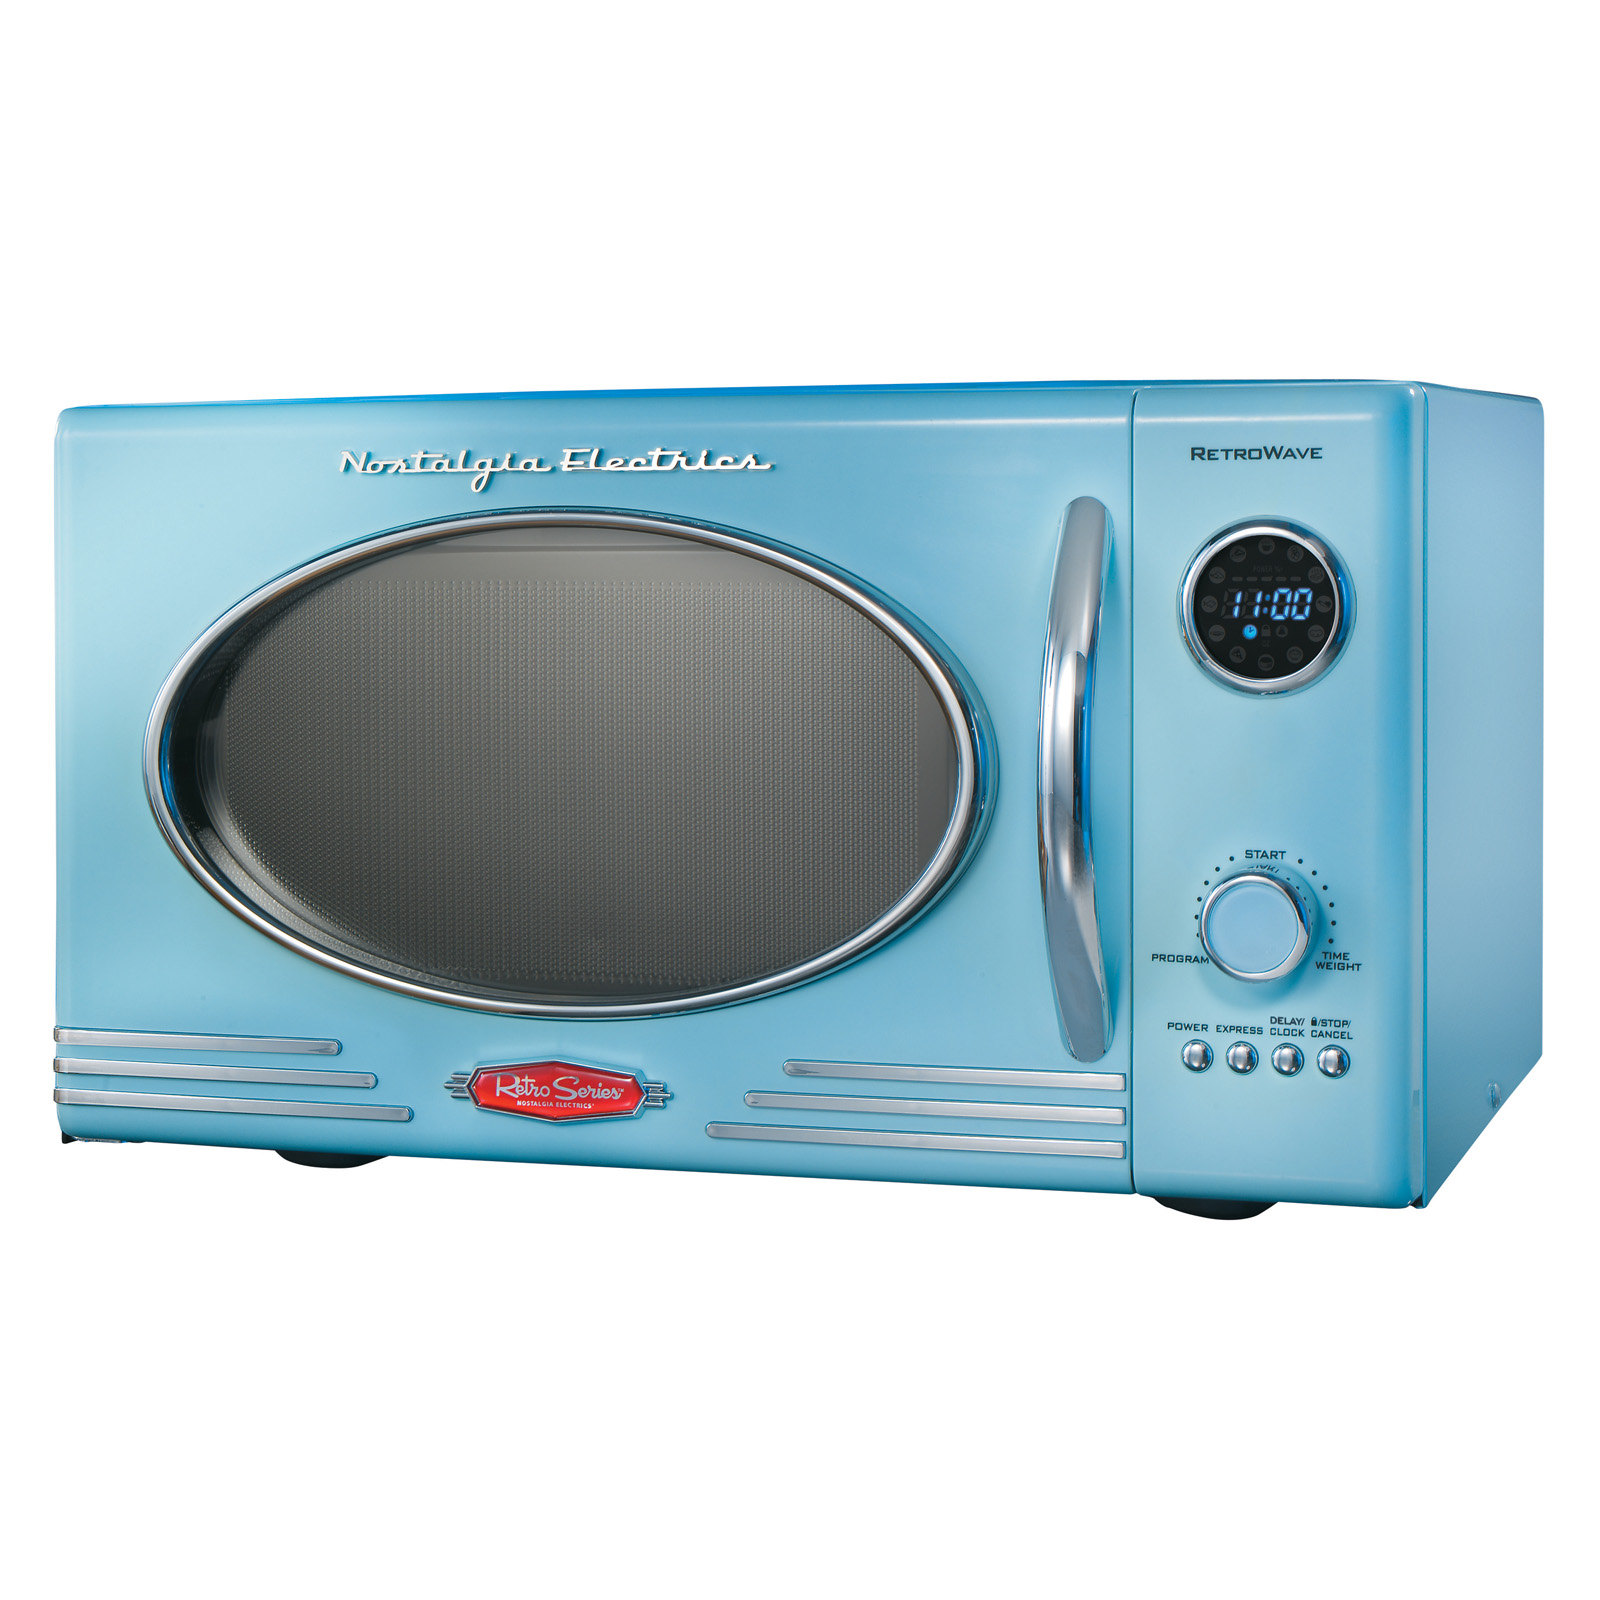 Baby Blue Microwave Oven: Nostalgia Electrics RMO-400BLUE Retro Series 0.9-Cubic